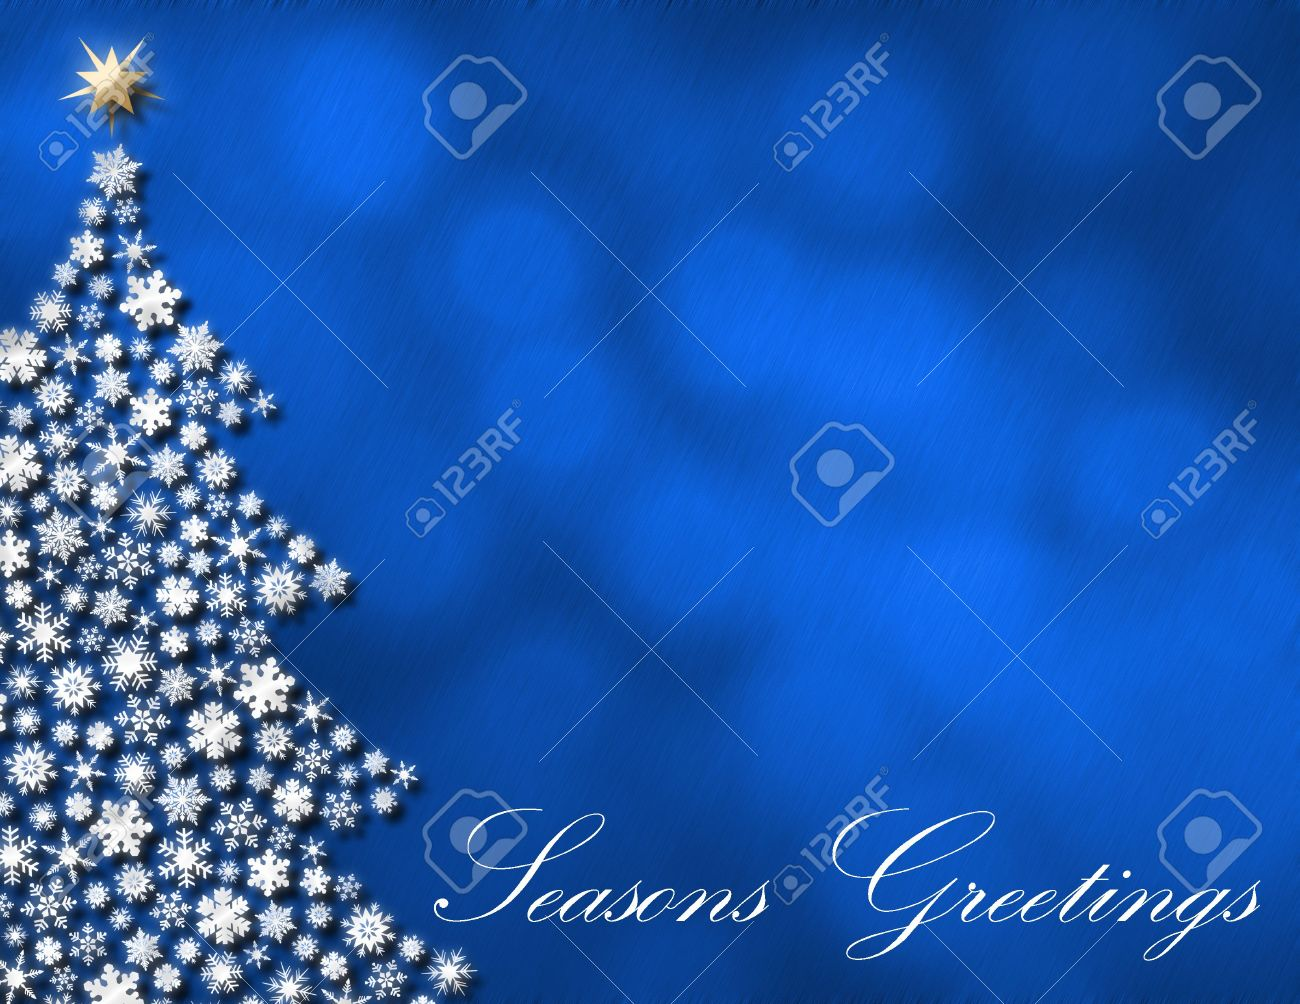 Seasons greetings winter background stock photo picture and seasons greetings winter background kristyandbryce Image collections